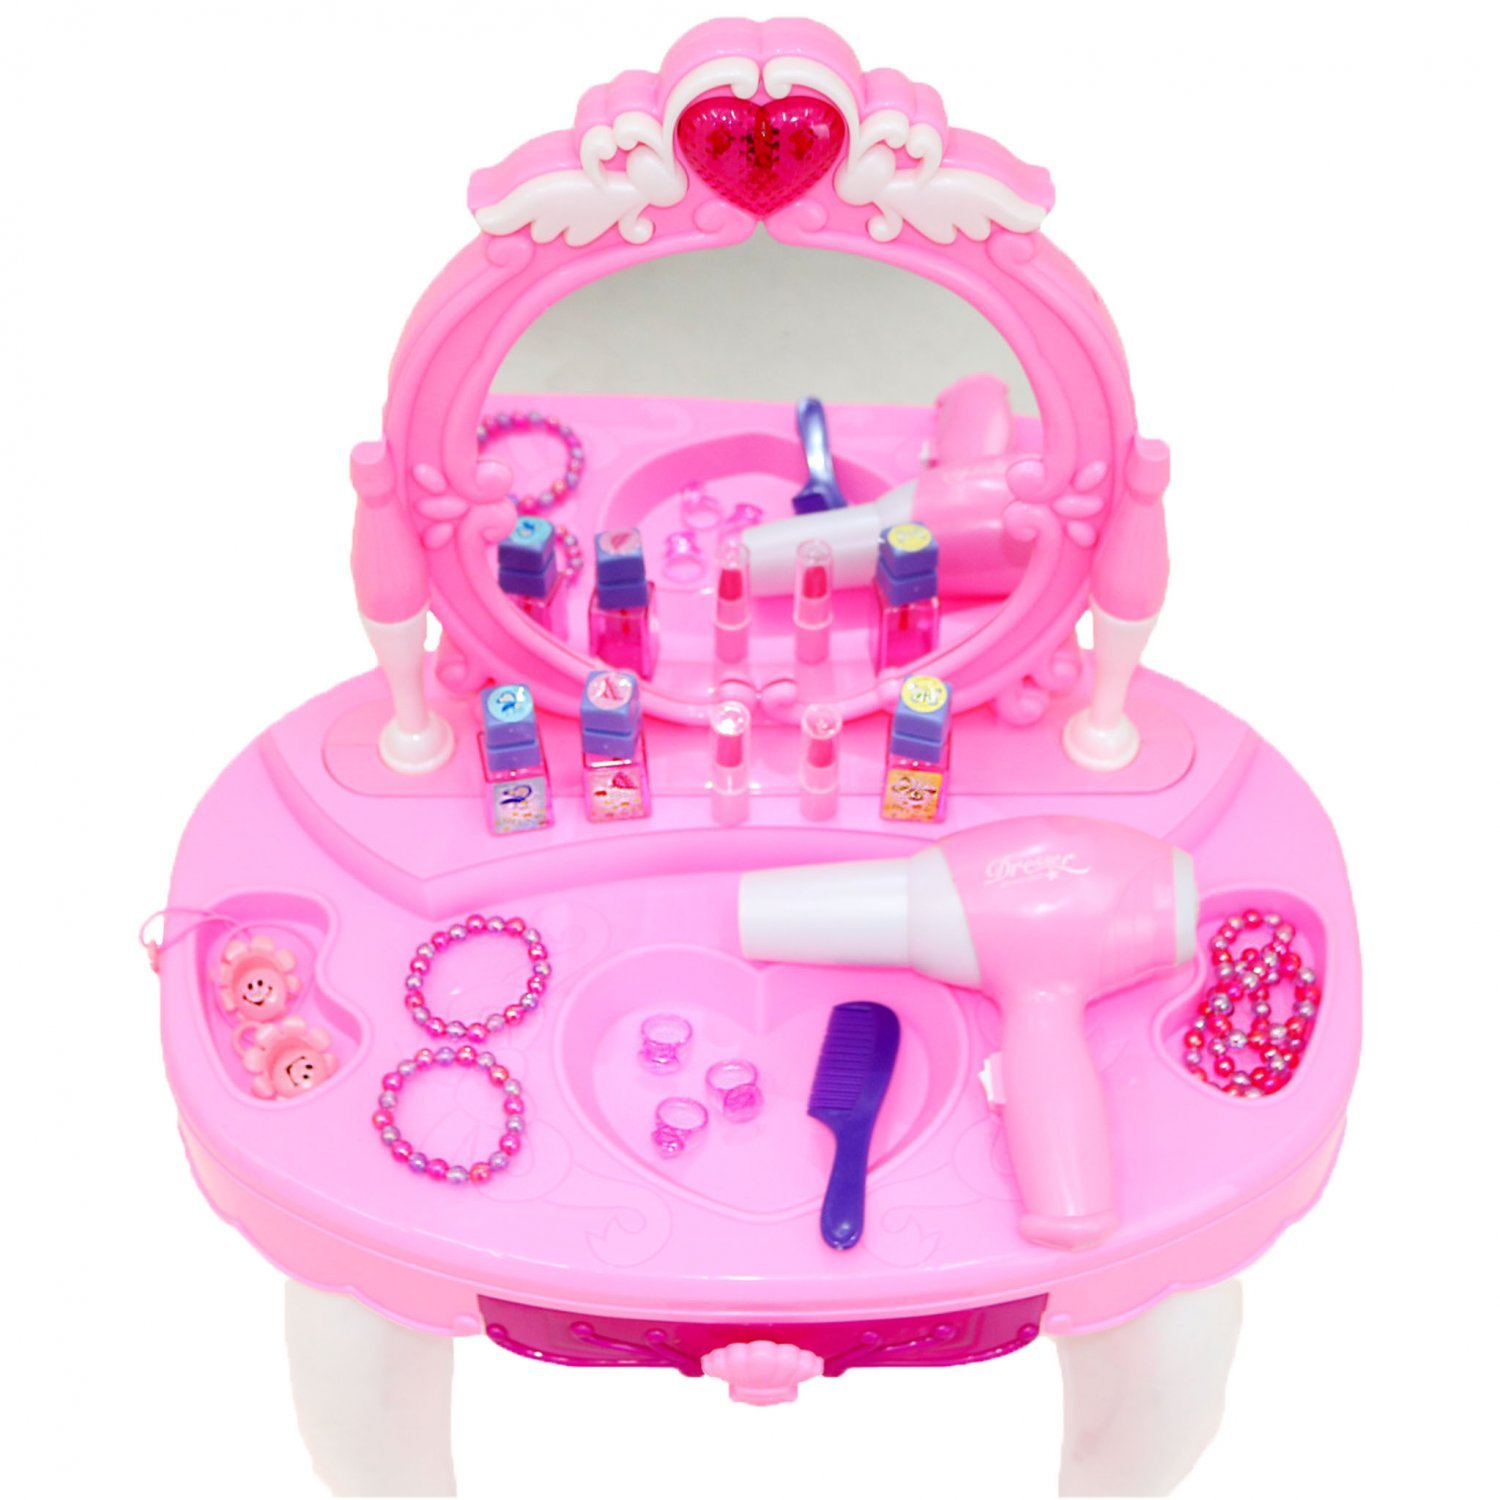 Toys For Kids Girls : Childrens kids girls play toy dressing table glamour